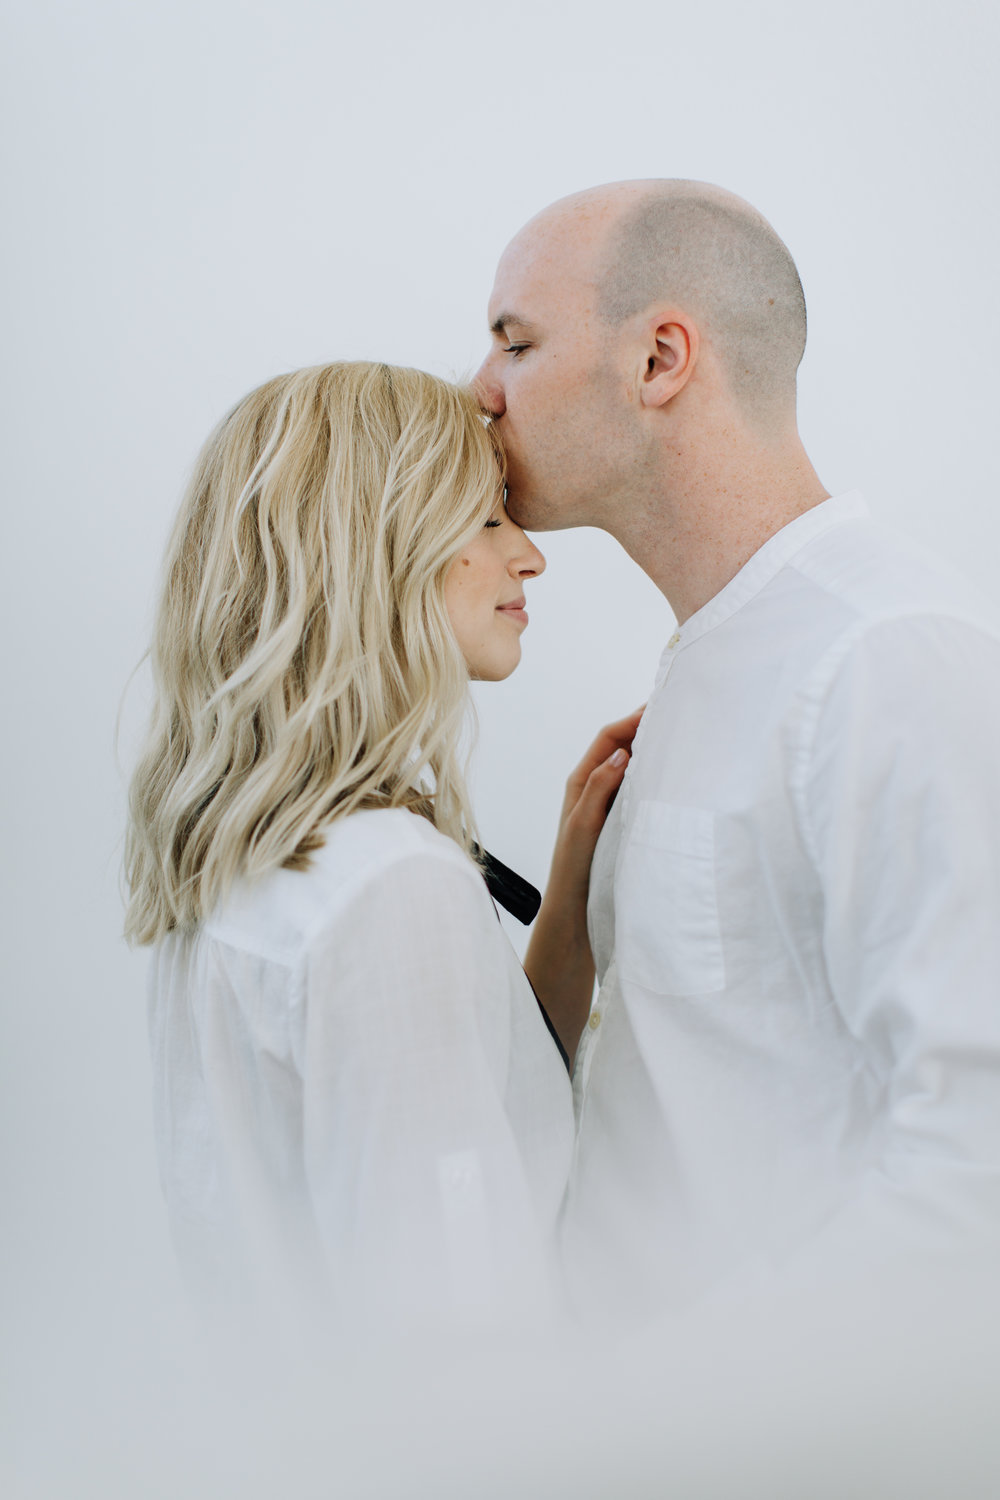 Paige-Newton-Photography-Couple-Portraits-Modern-Engagement-Session.jpg